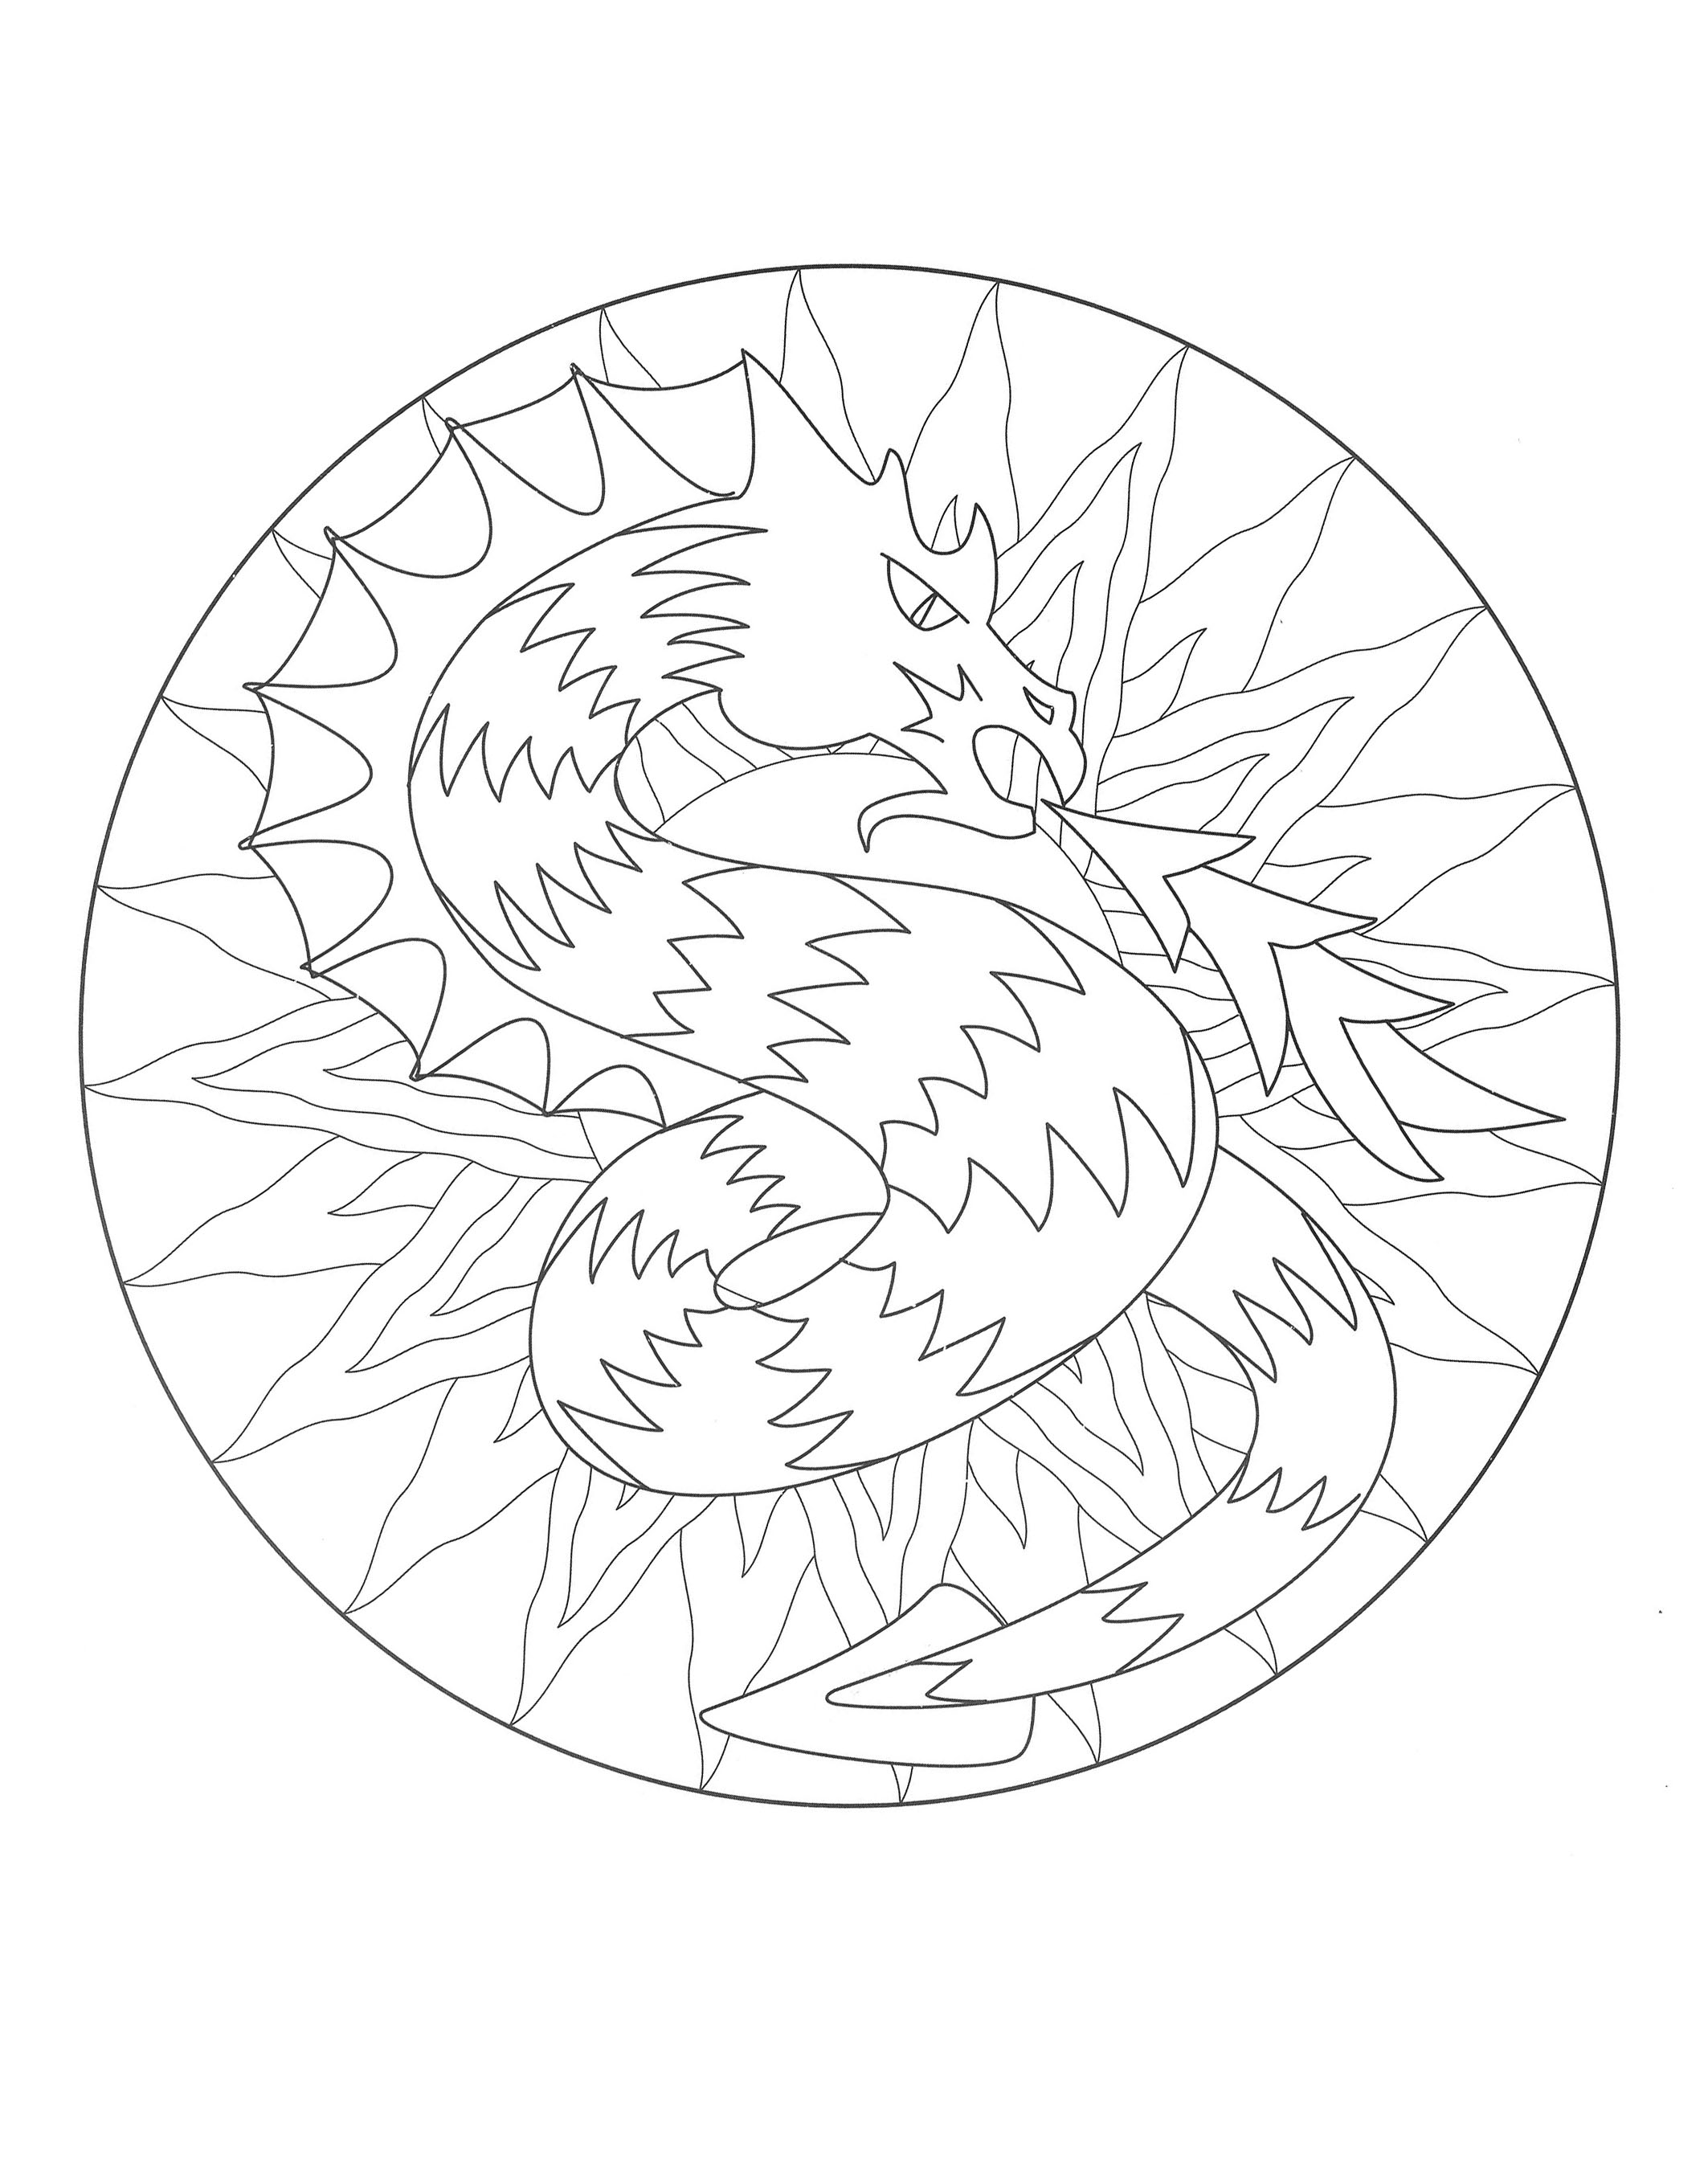 Mandala with a dragon 3